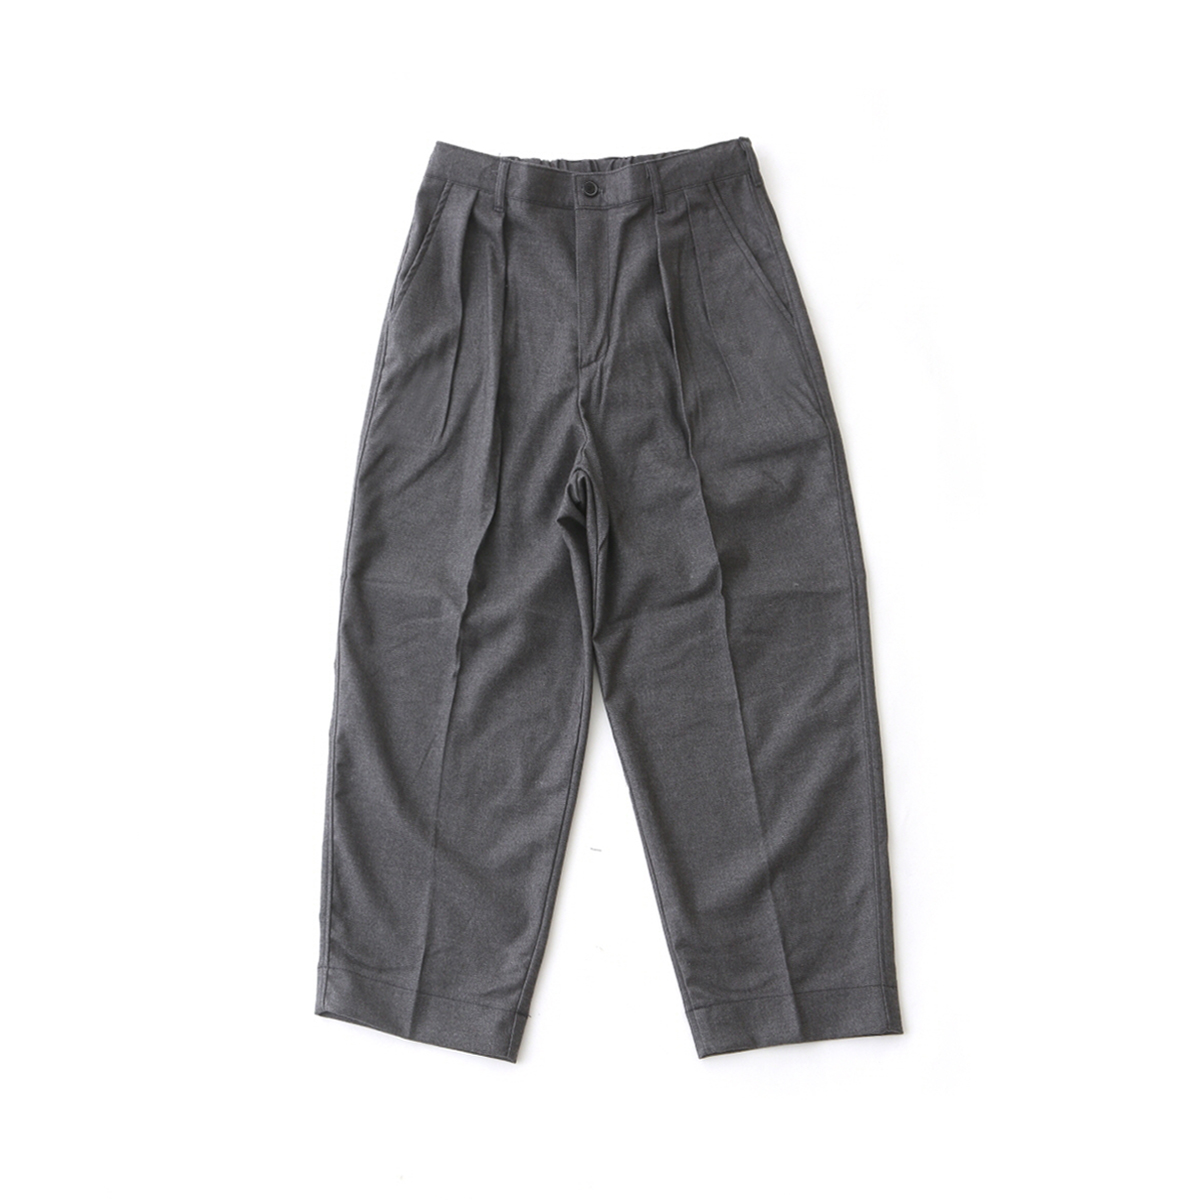 [DAILY INN] LOBBY BOY EASY WIDE TR WOOL PANTS / LOOSE TAPERED FIT 'CHARCOAL WOOL'